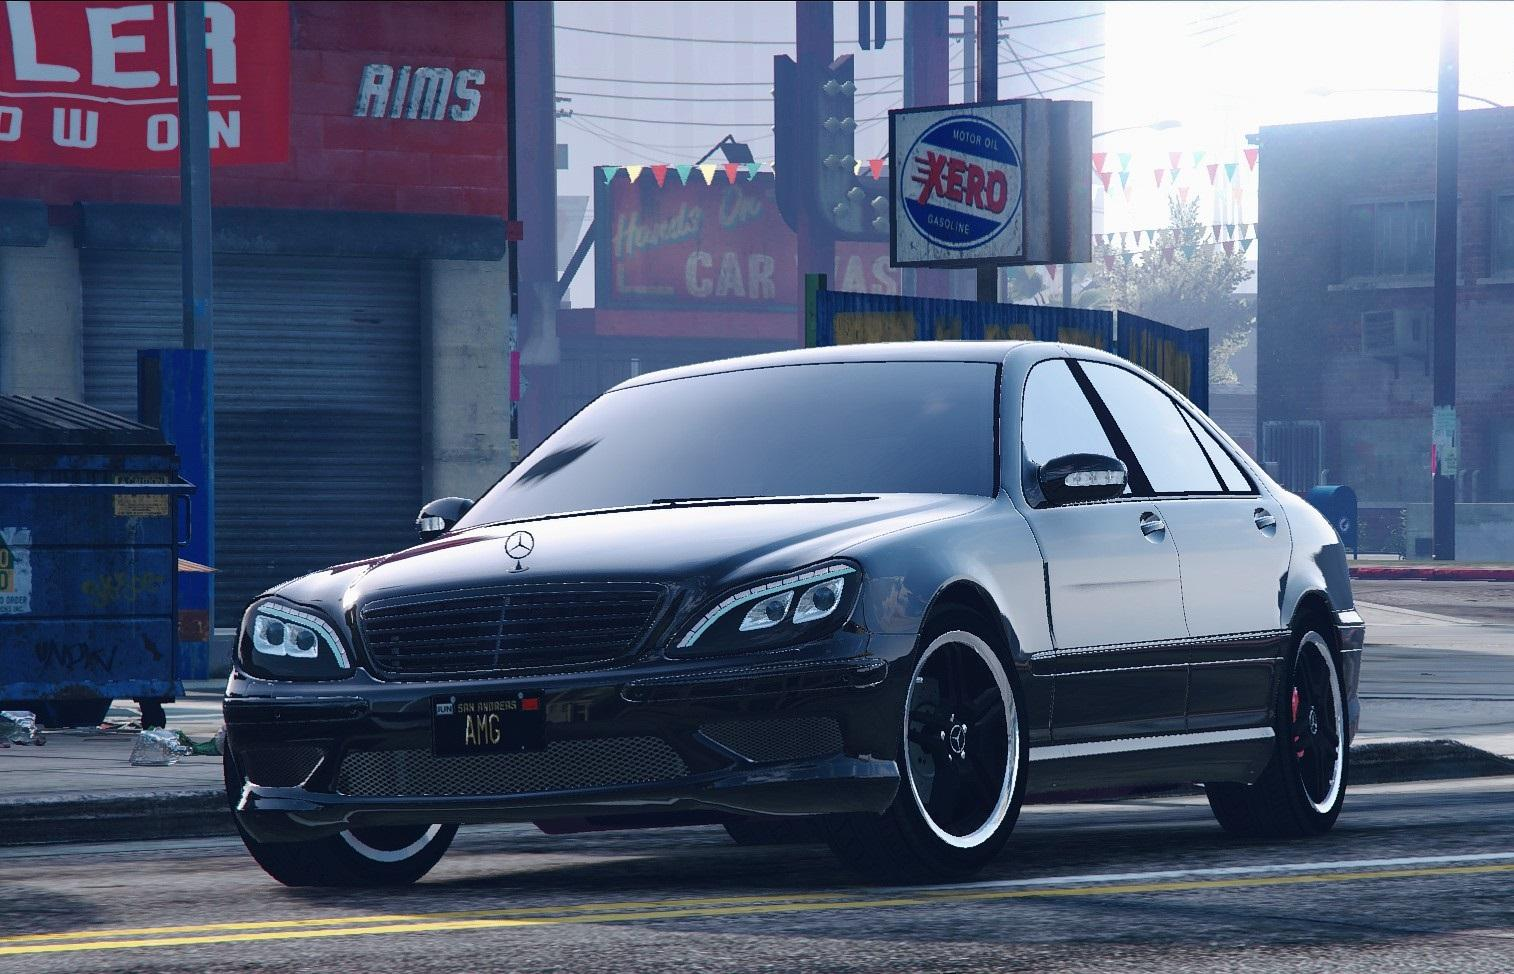 mercedes benz s600 w220 tunable amg pack add on gta5. Black Bedroom Furniture Sets. Home Design Ideas